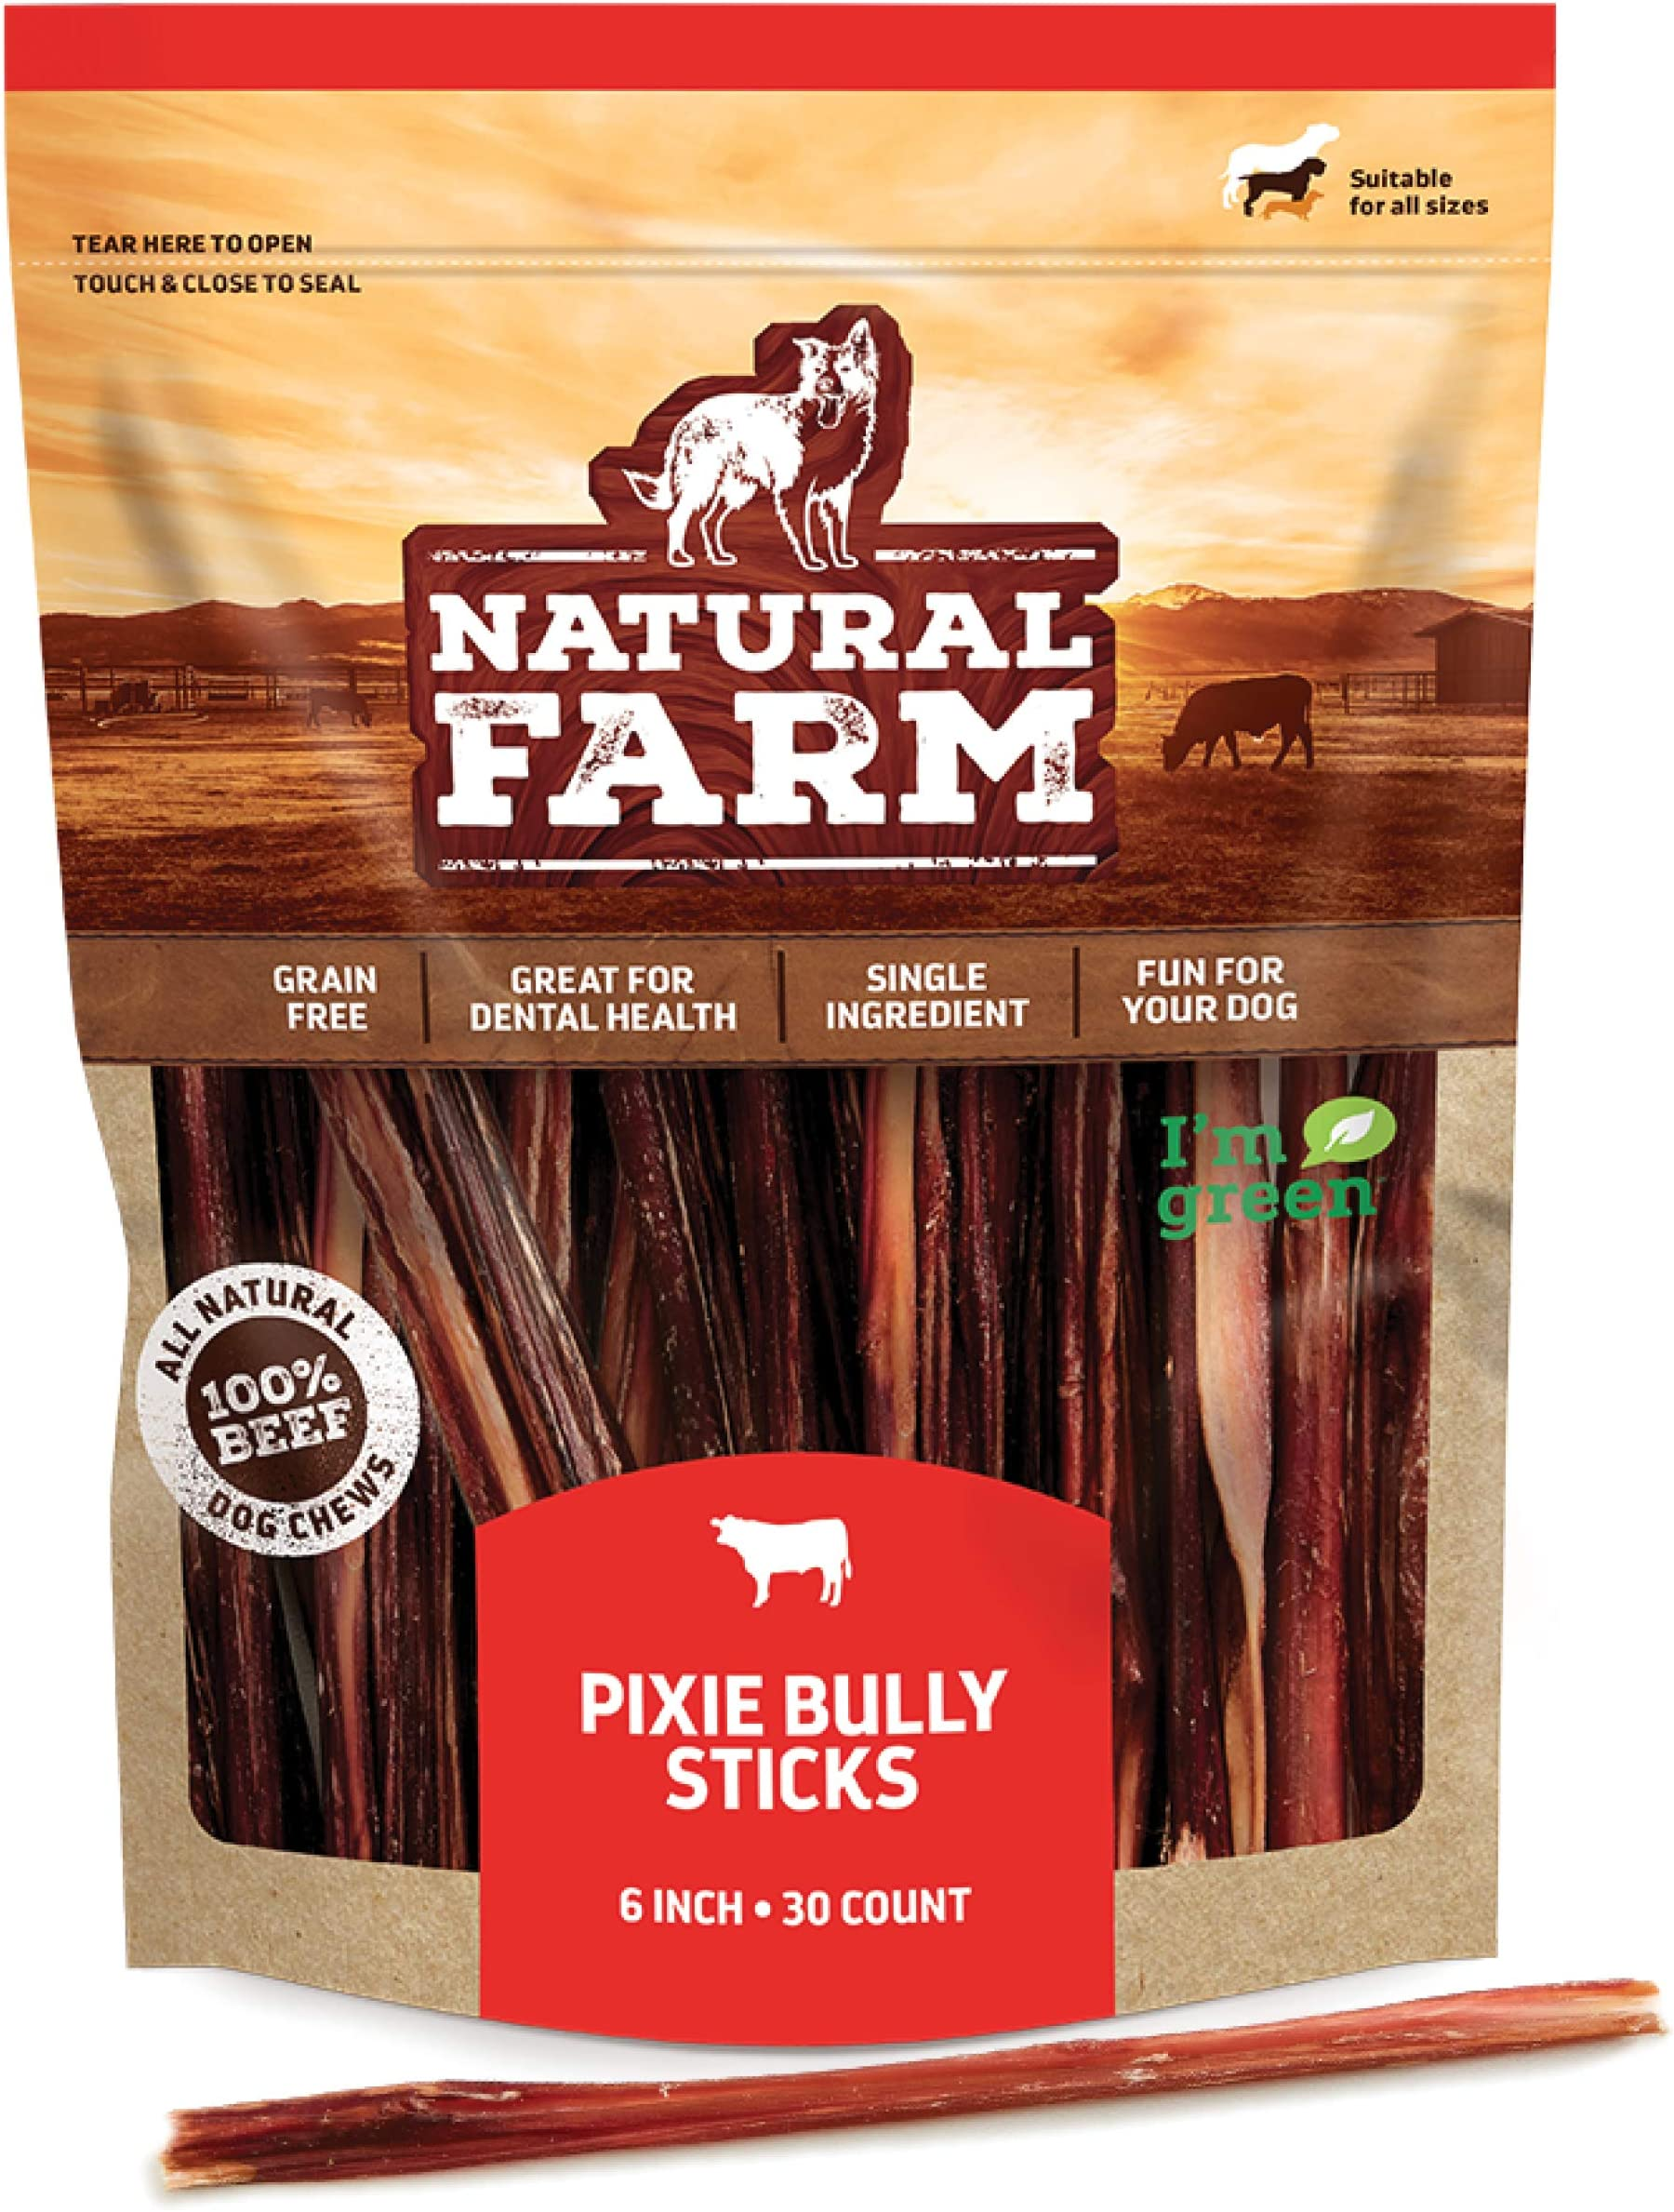 "Made by Natural Farm Pup 6"" Pixie Bully Skin Sticks (30-Pack), Extra-Thin, Hollow, Fast Chewing Pet Treats - Grain-Free, High Protein, Best Rawhide Alternative for All Small, Puppies or Senior Dogs"